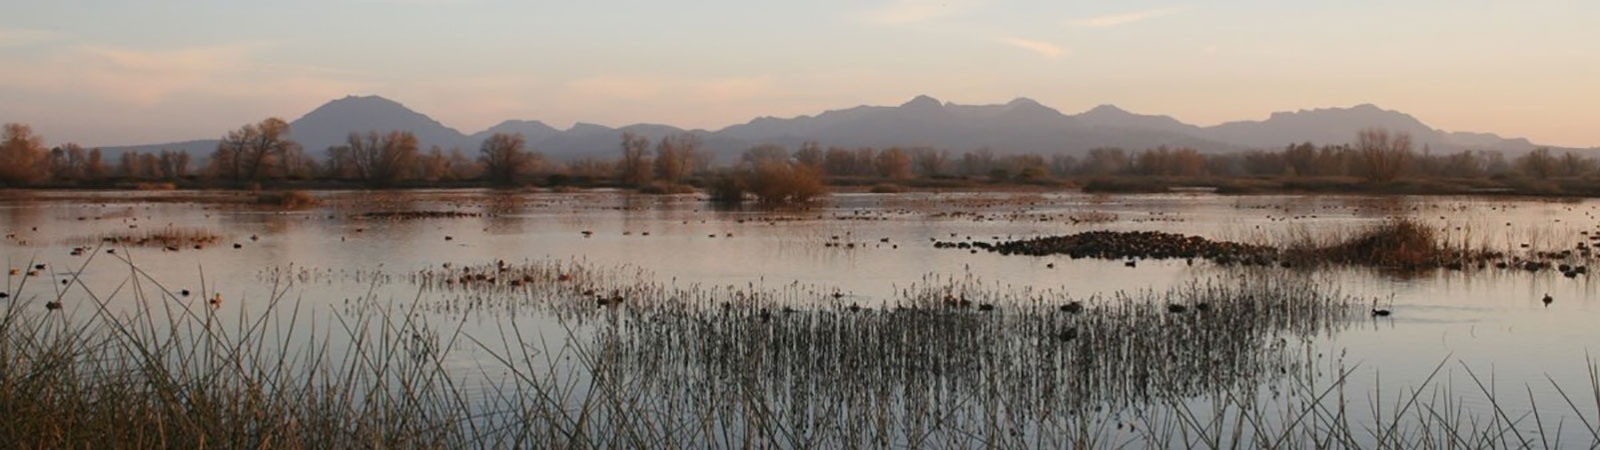 Wetlands with mountains on the horizon